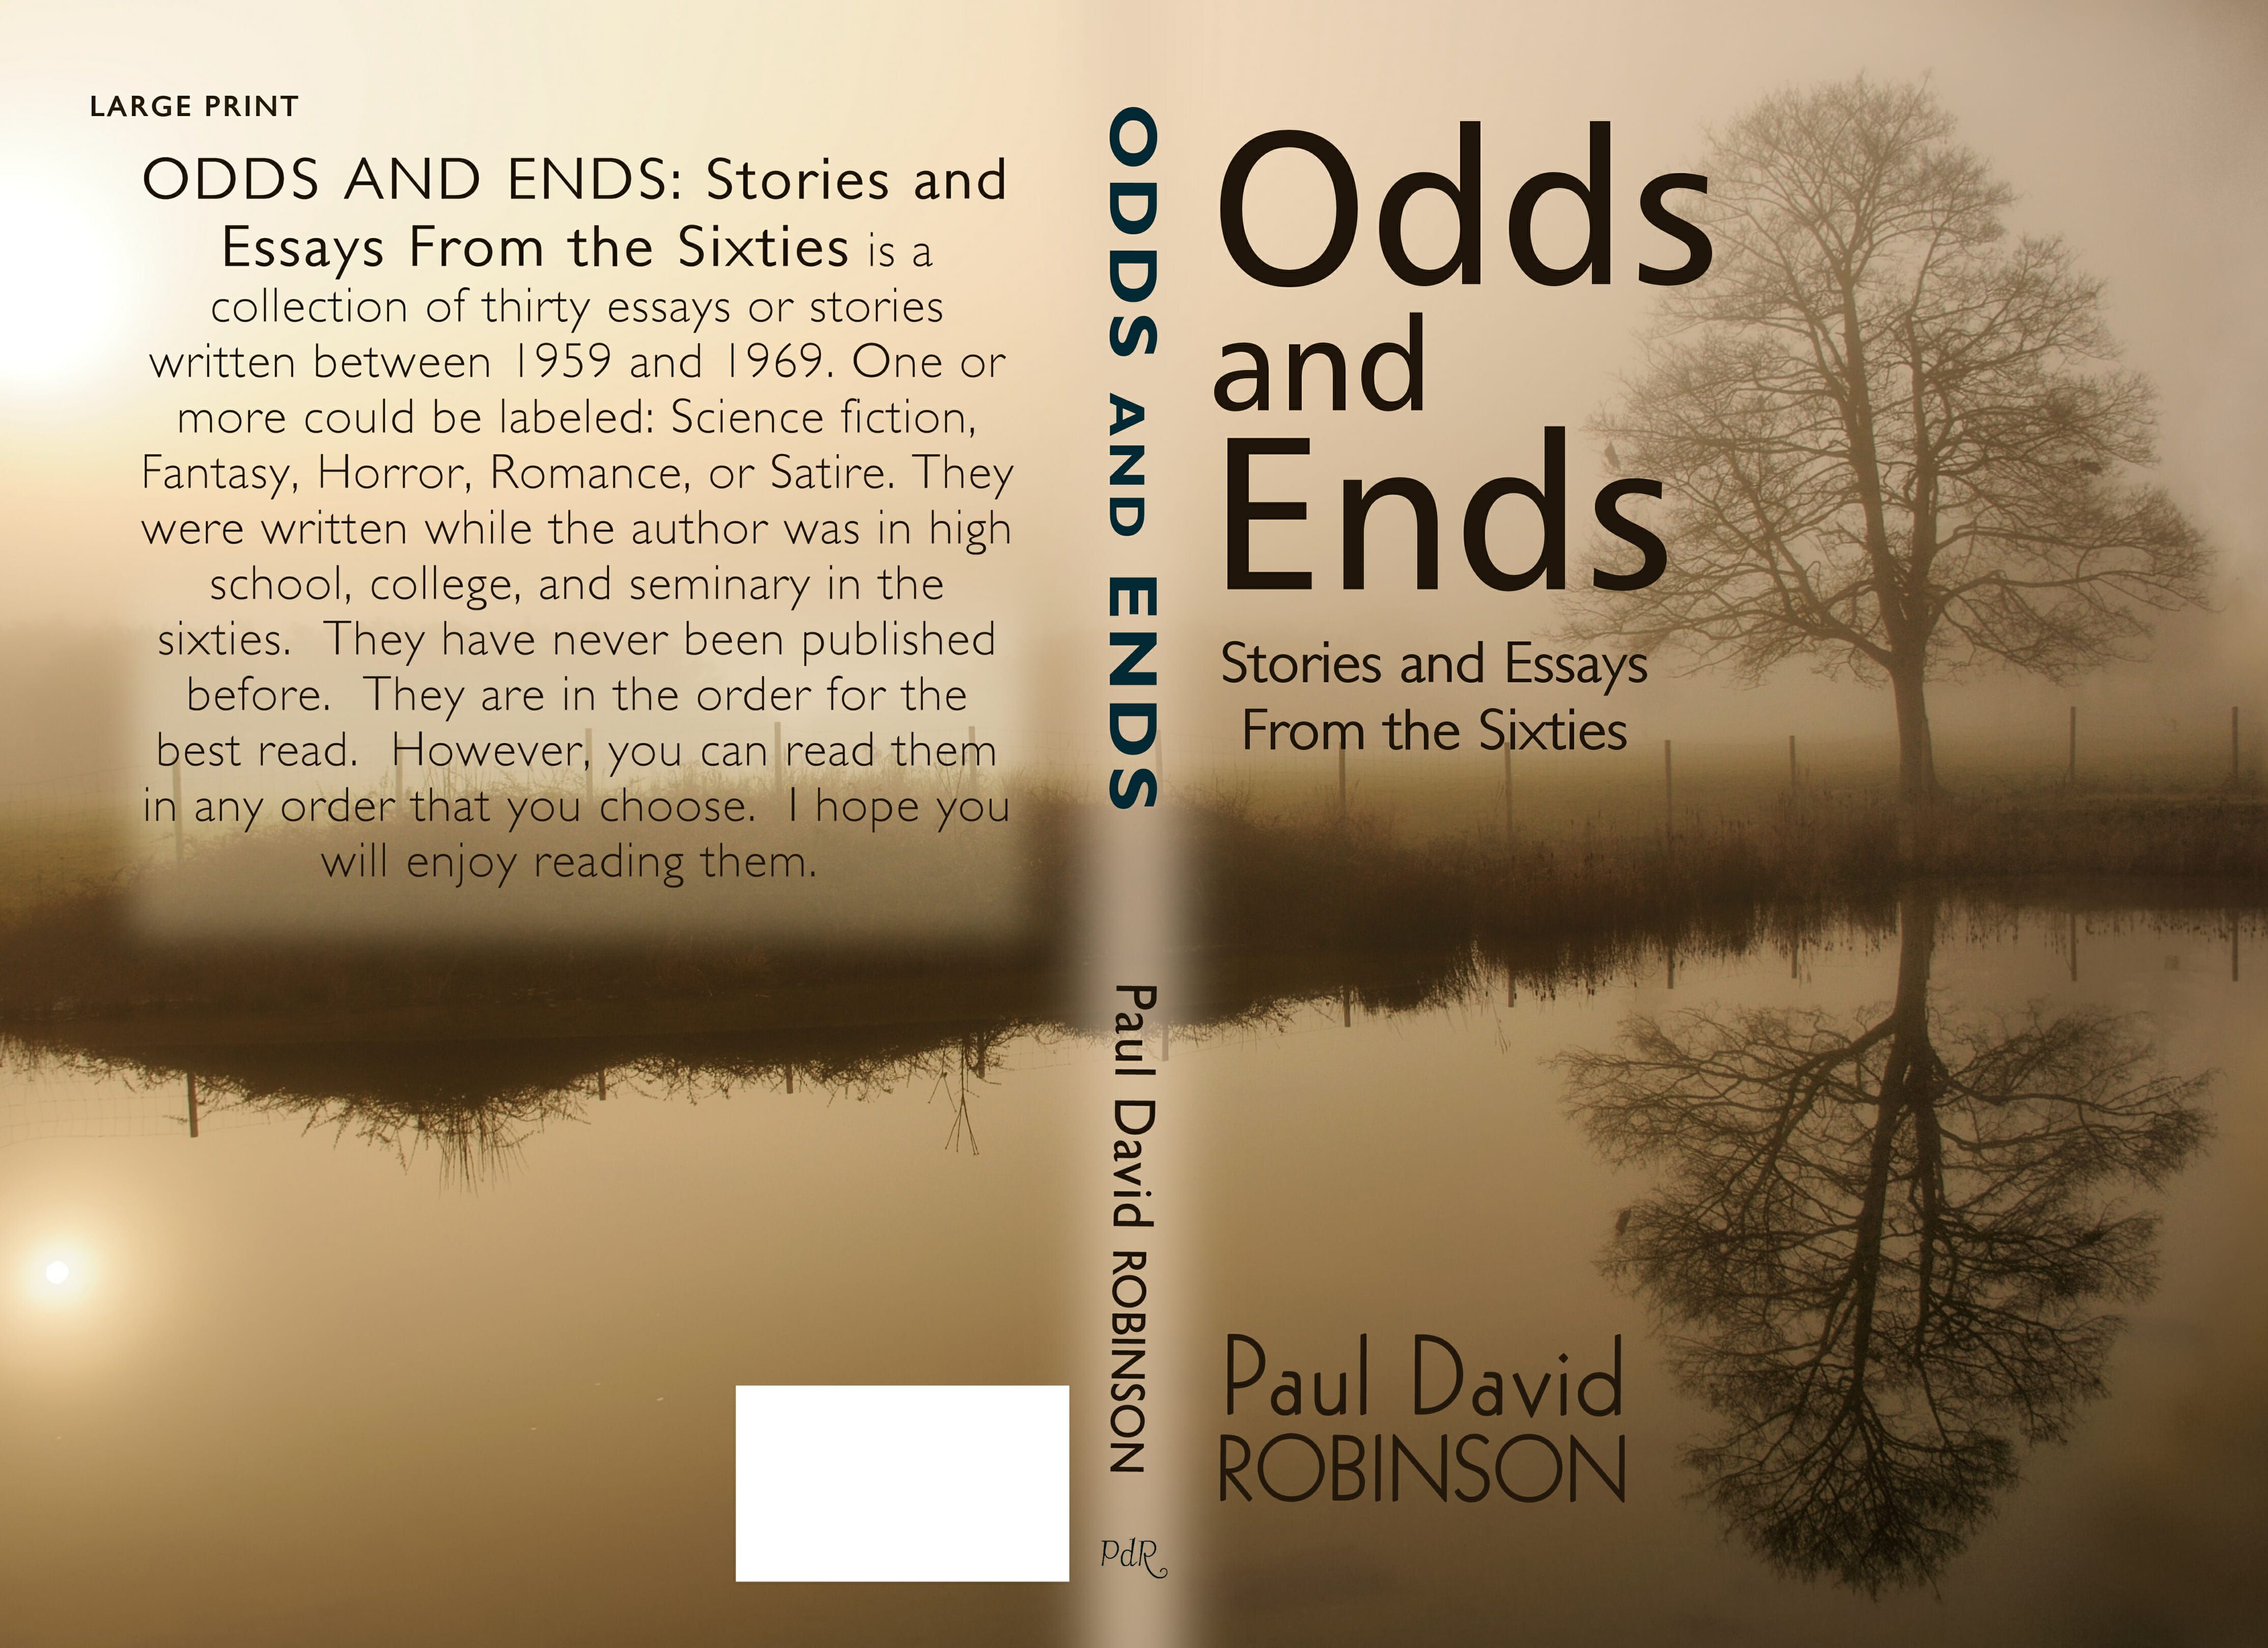 ODDS AND ENDS FINAL WRAP cover wrap (2)